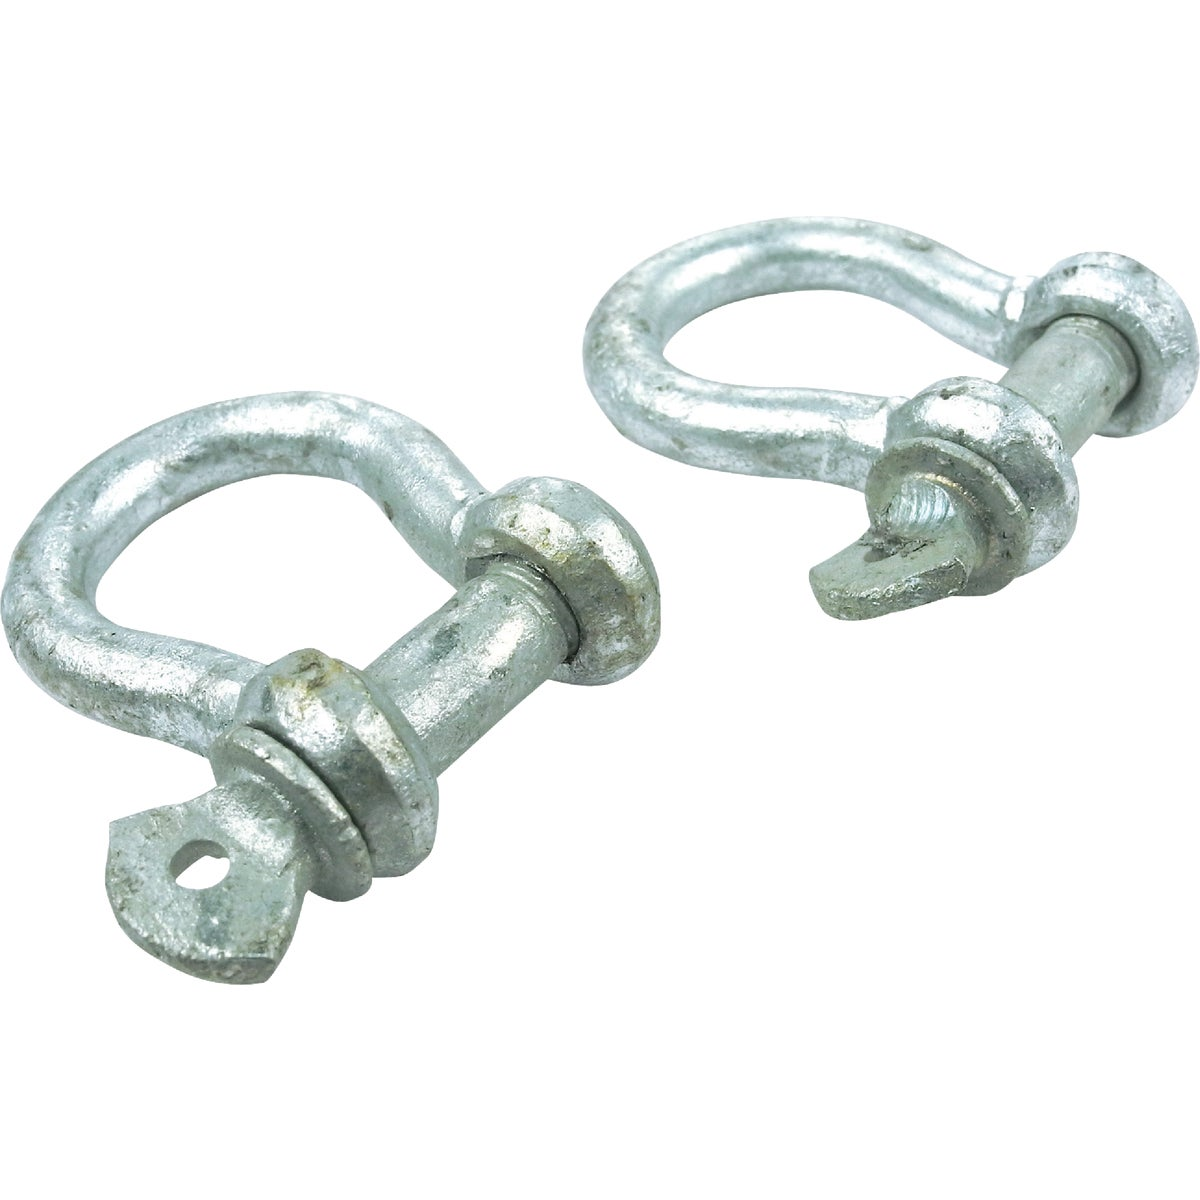 "1/4"" ANCHOR SHACKLE"